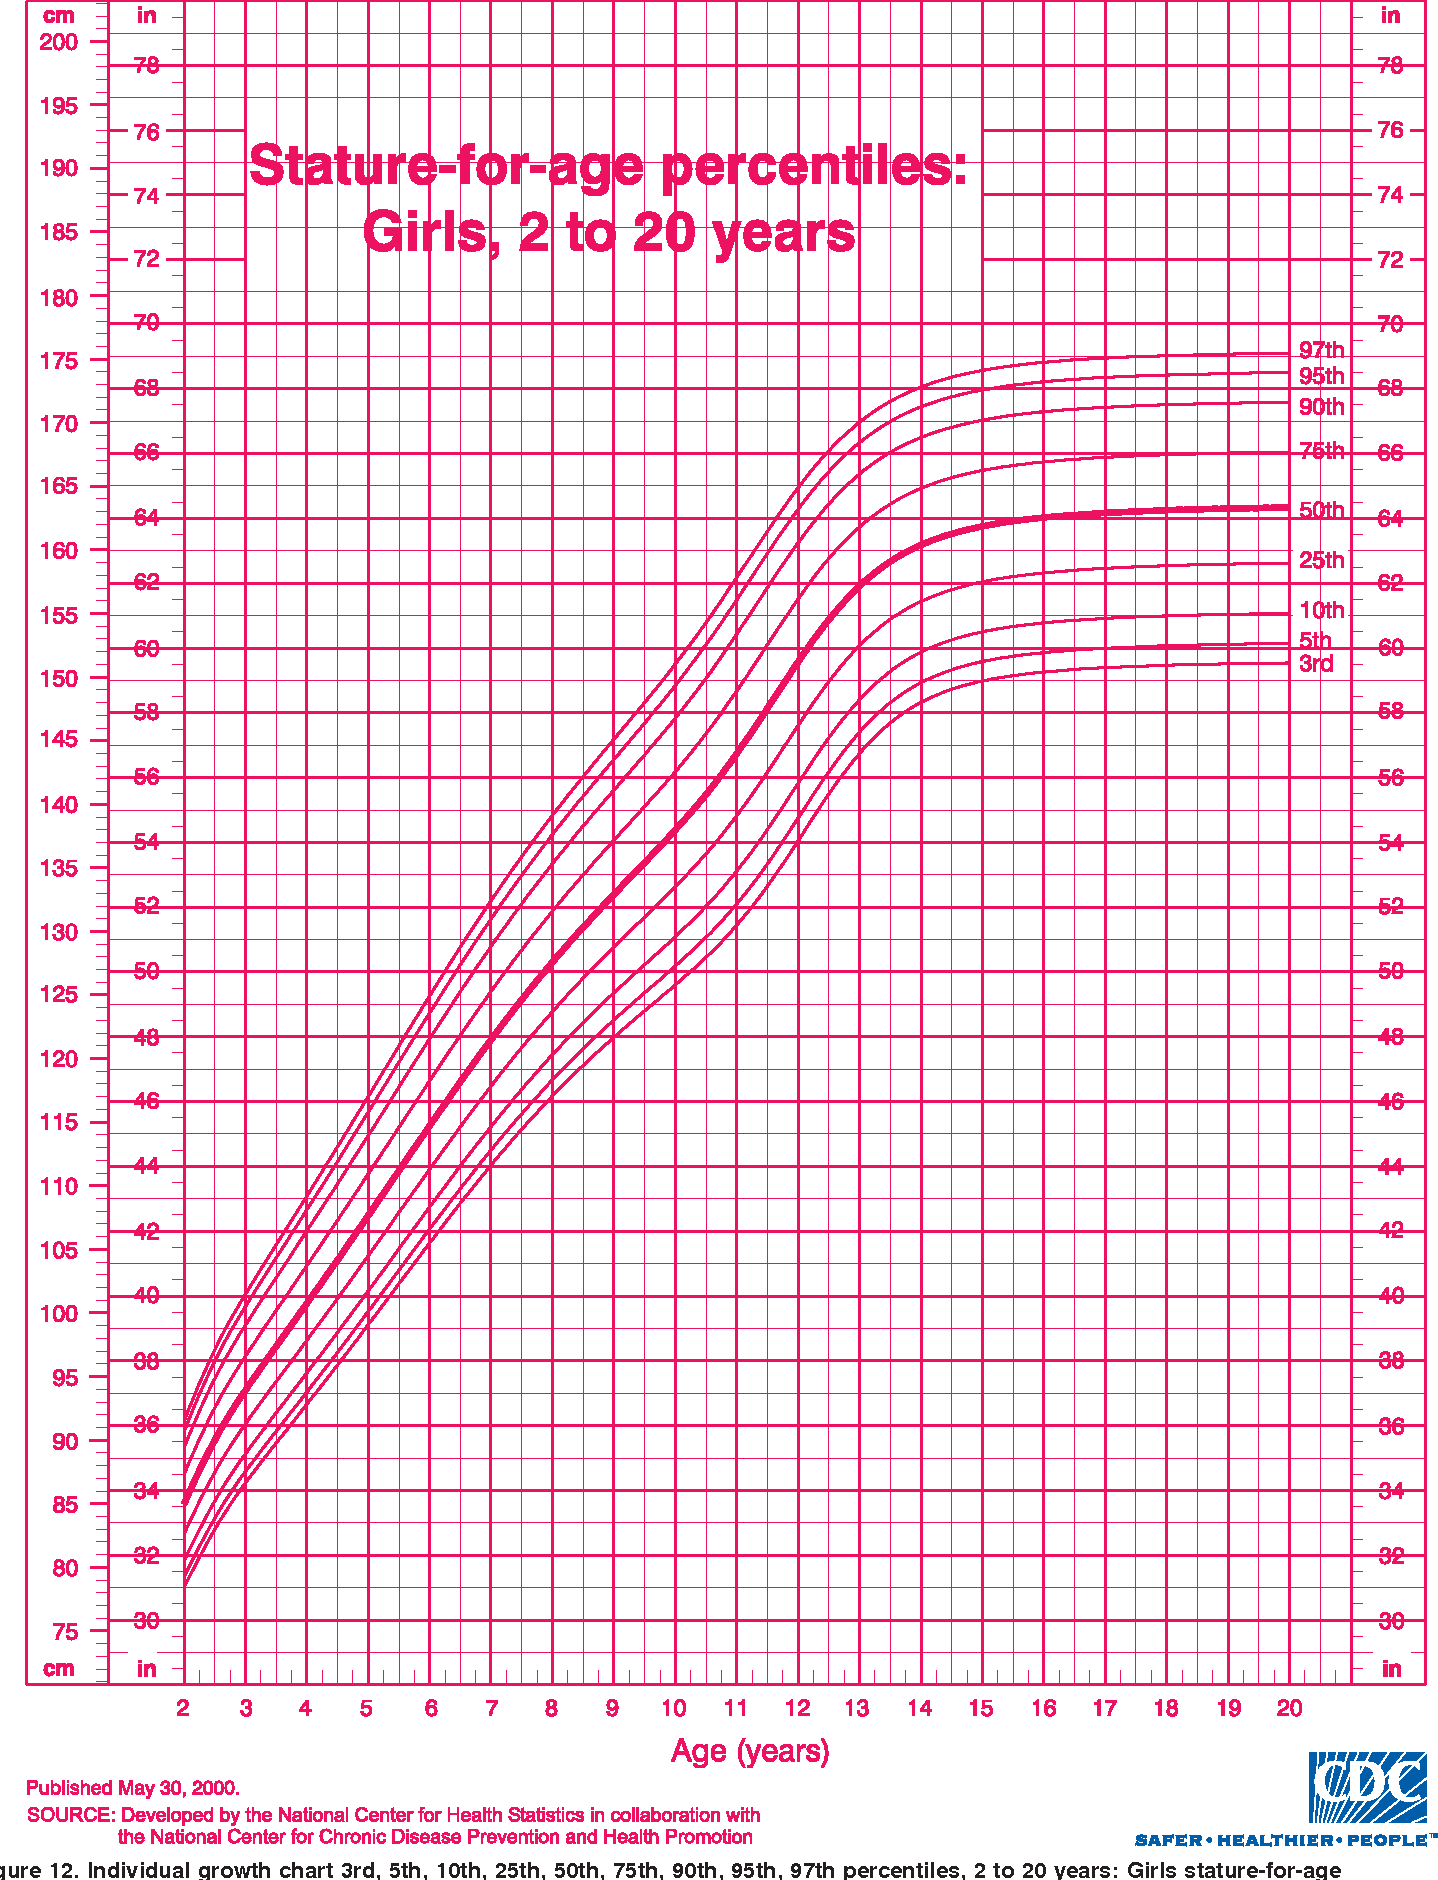 Growth chart for girls 2 to 20 years images free any chart examples growth chart for girls 2 to 20 years images free any chart examples growth chart for nvjuhfo Gallery